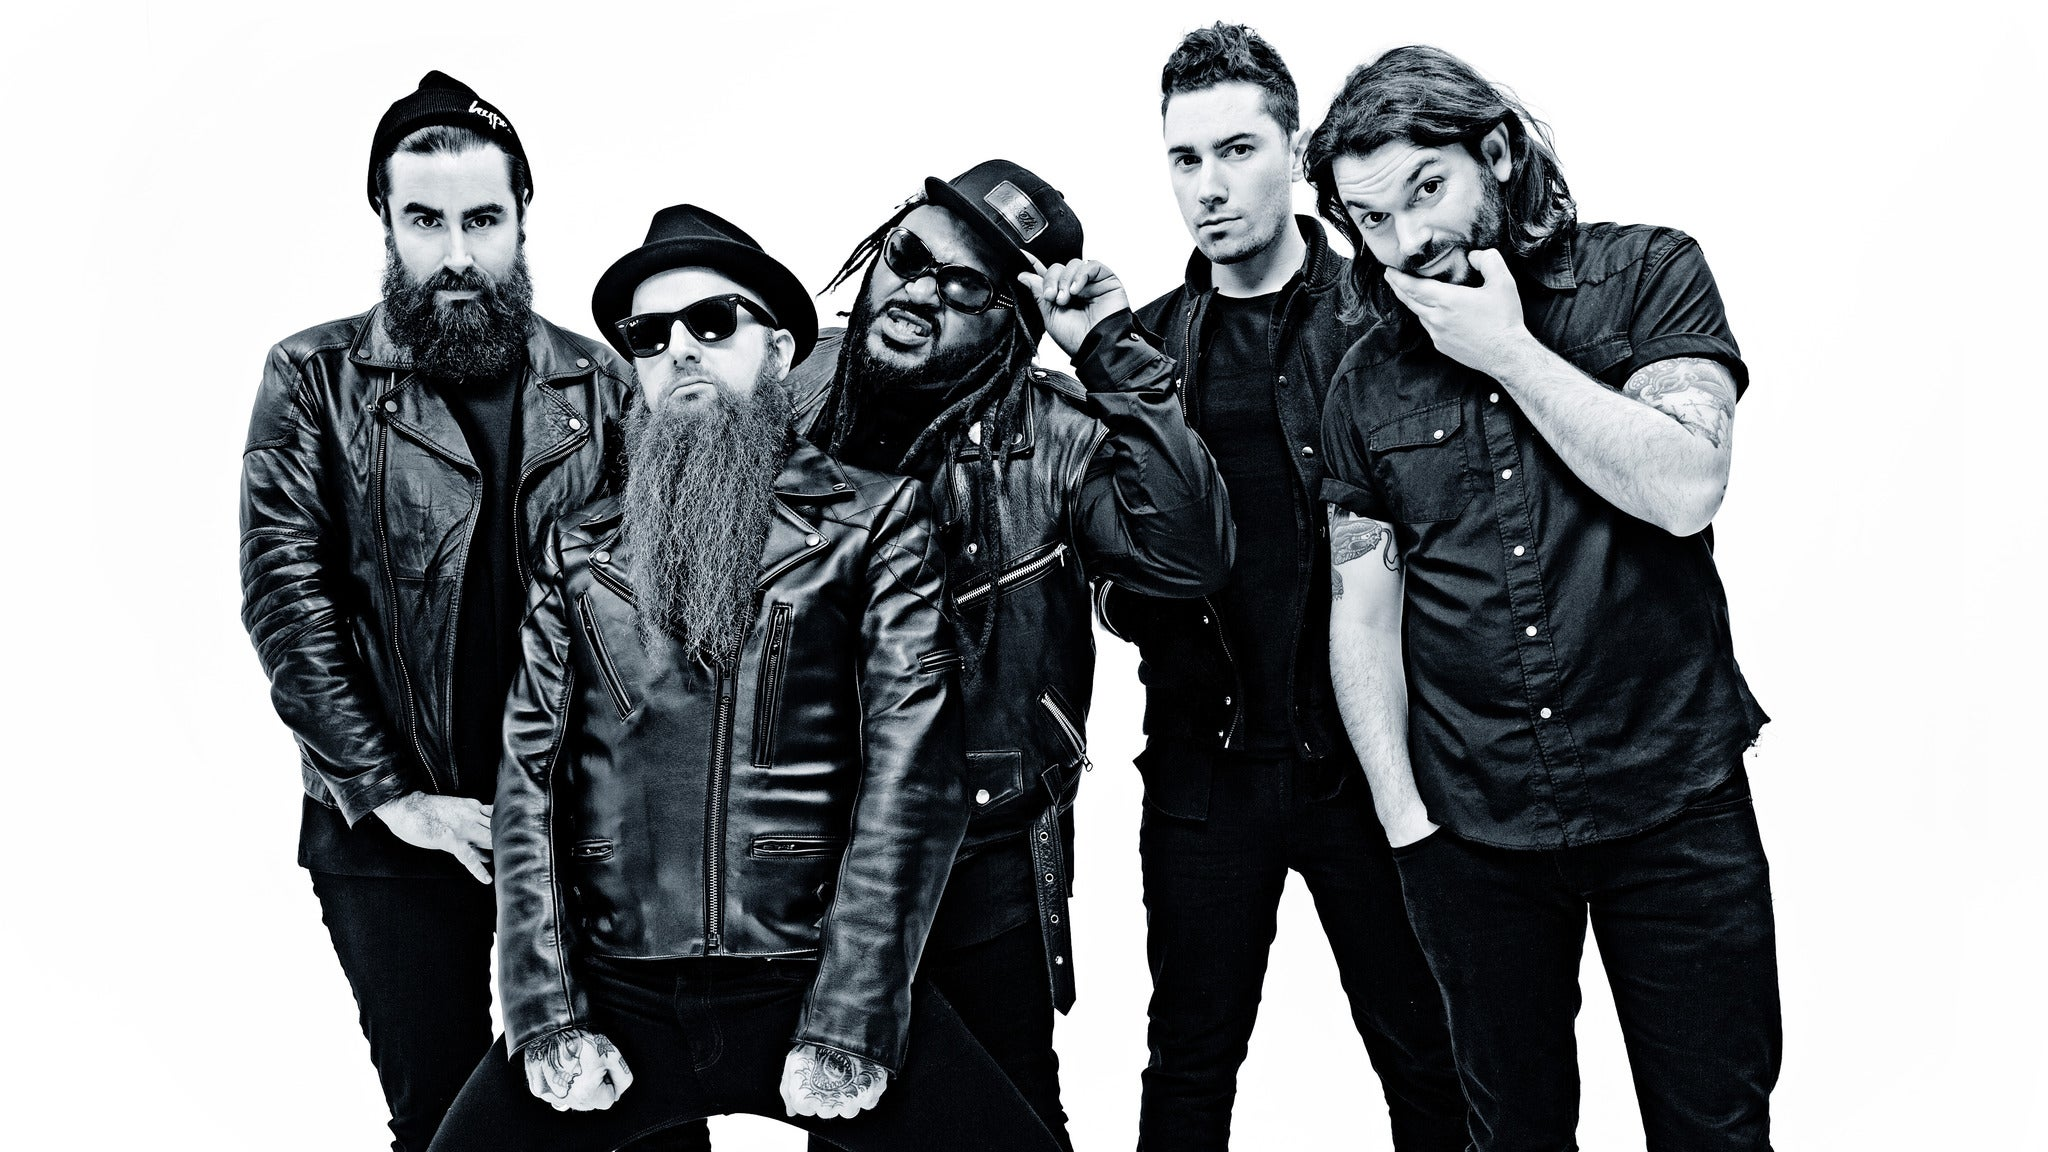 Skindred w/ Sumo Cyco at Intersection - Elevation